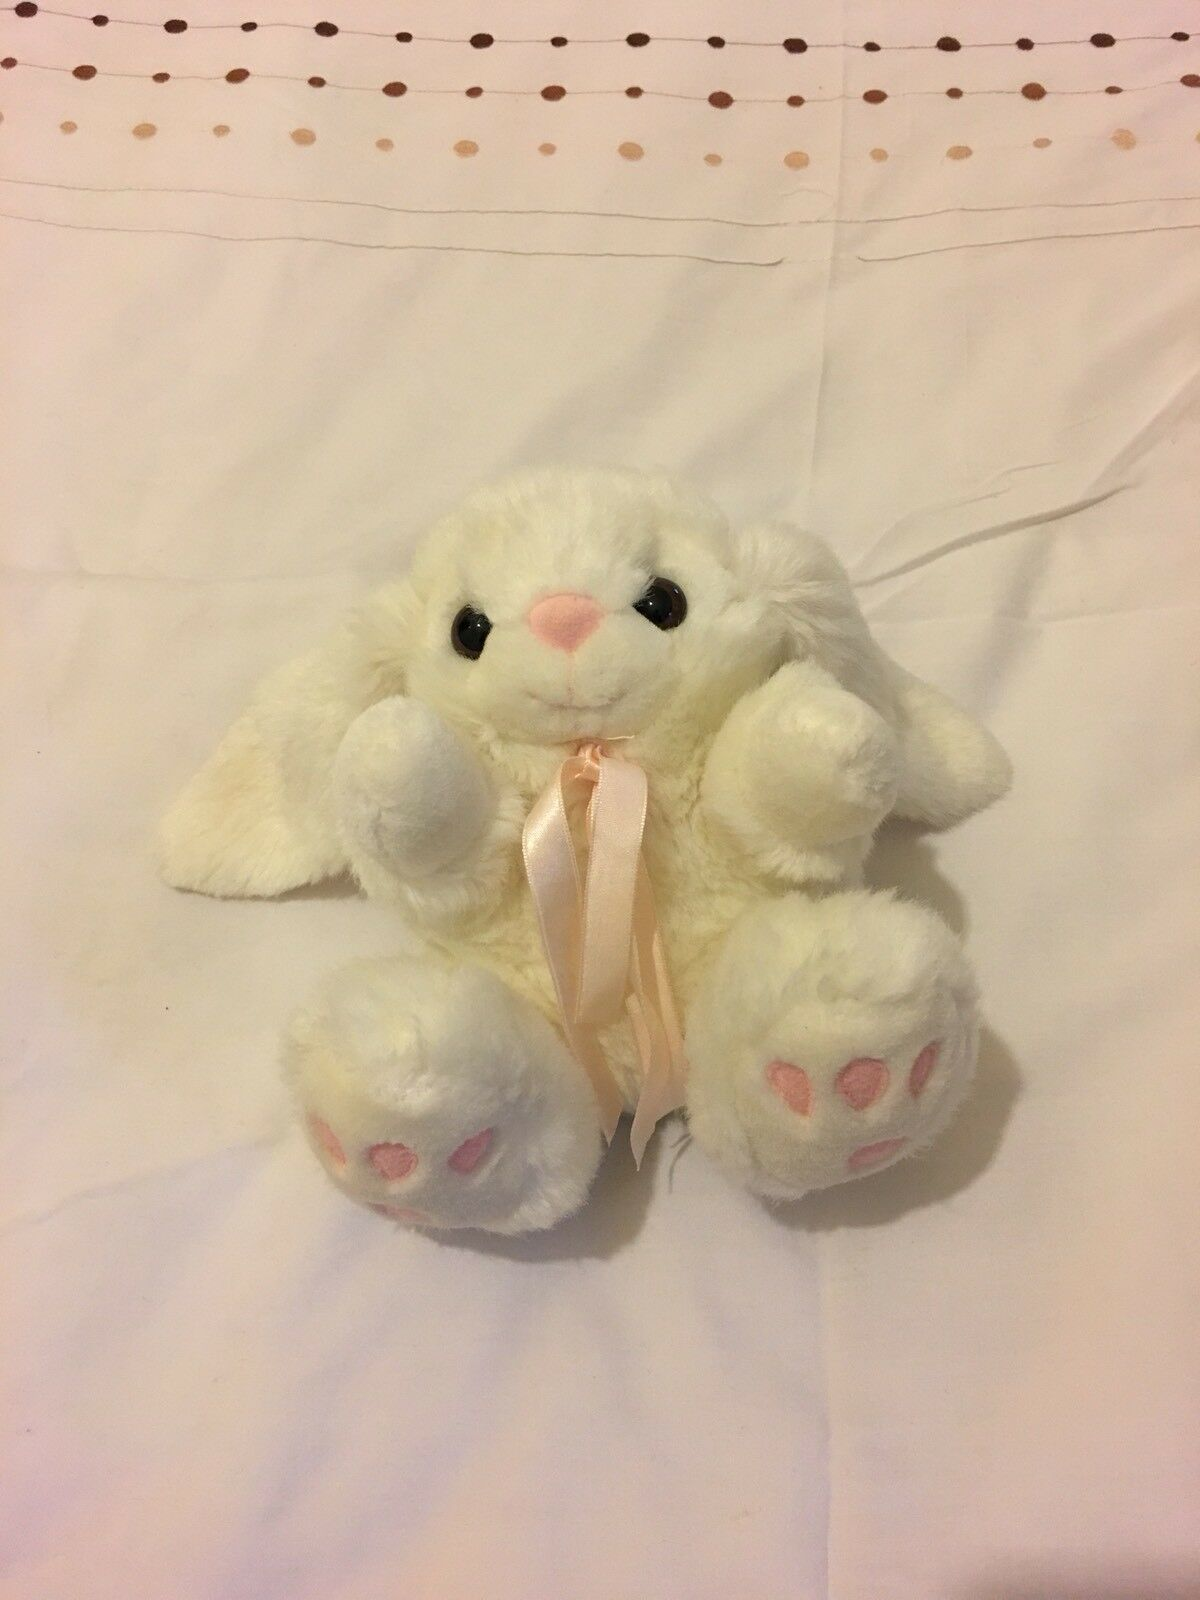 Beautiful Bunny Soft Plush Toy Toy Toy For Baby Toddler Kids 80d42b